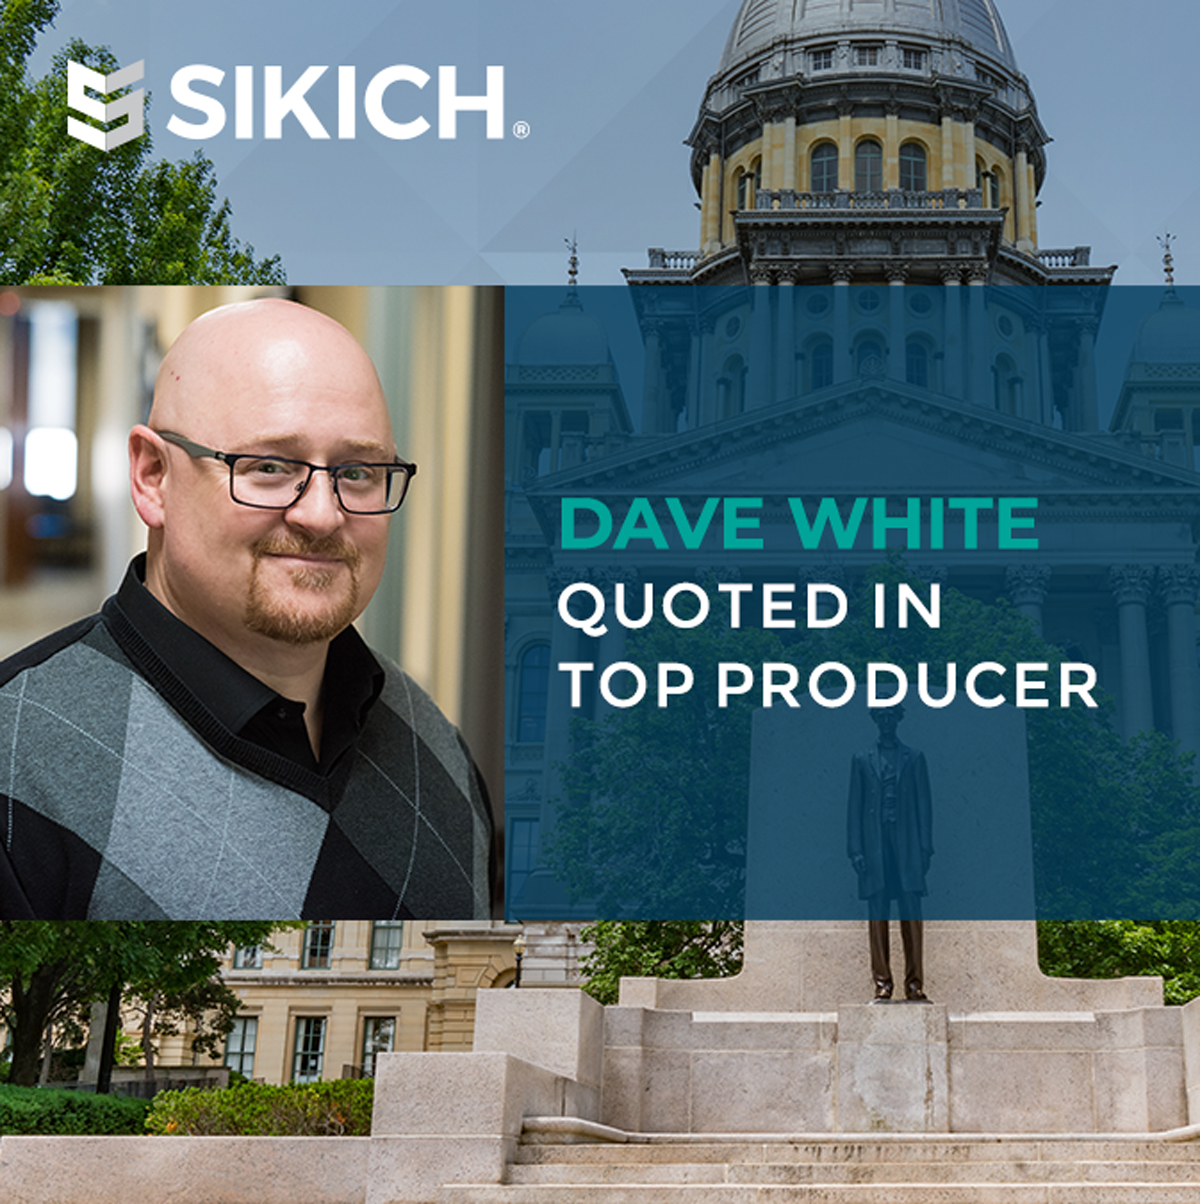 SKCH-Dave-White-Top-Producer-Square-11.12.19